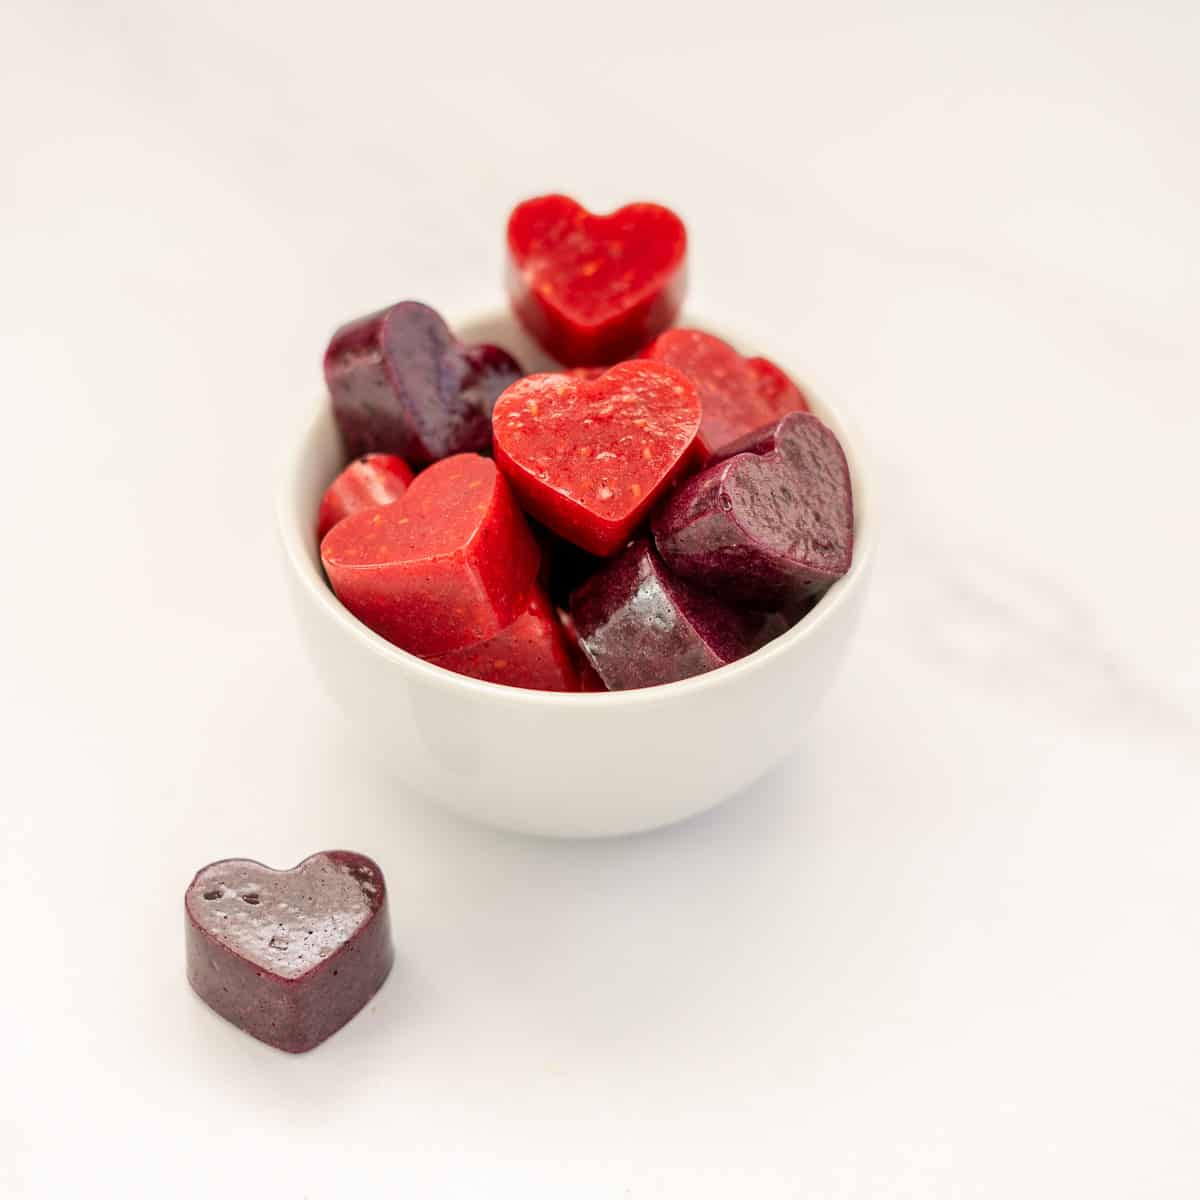 red and purple heart shaped fruit gummies in a white bowl